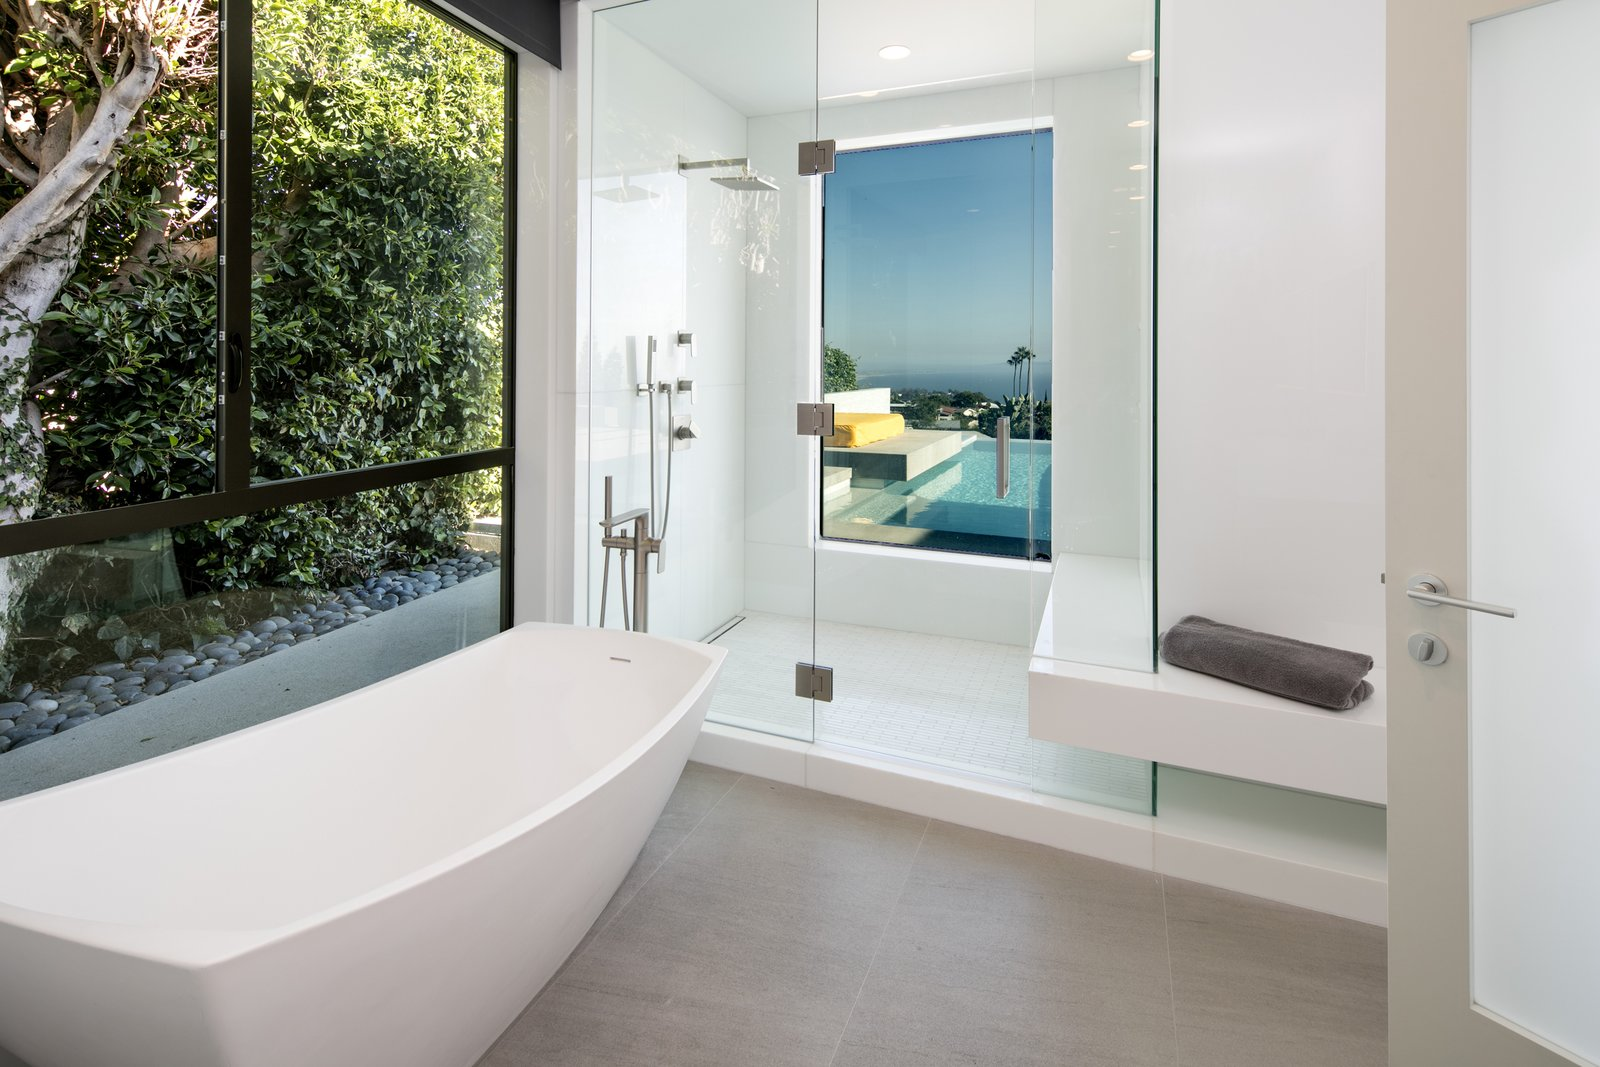 Intimate spaces, such as the master bathroom, are invited to enjoy the view with an extra-large window that overlooks the patio.  Clever details make this functional; the glass becomes opaque when the bathroom lights are on to ensure privacy.  Glenhaven Residence by Abramson Teiger Architects